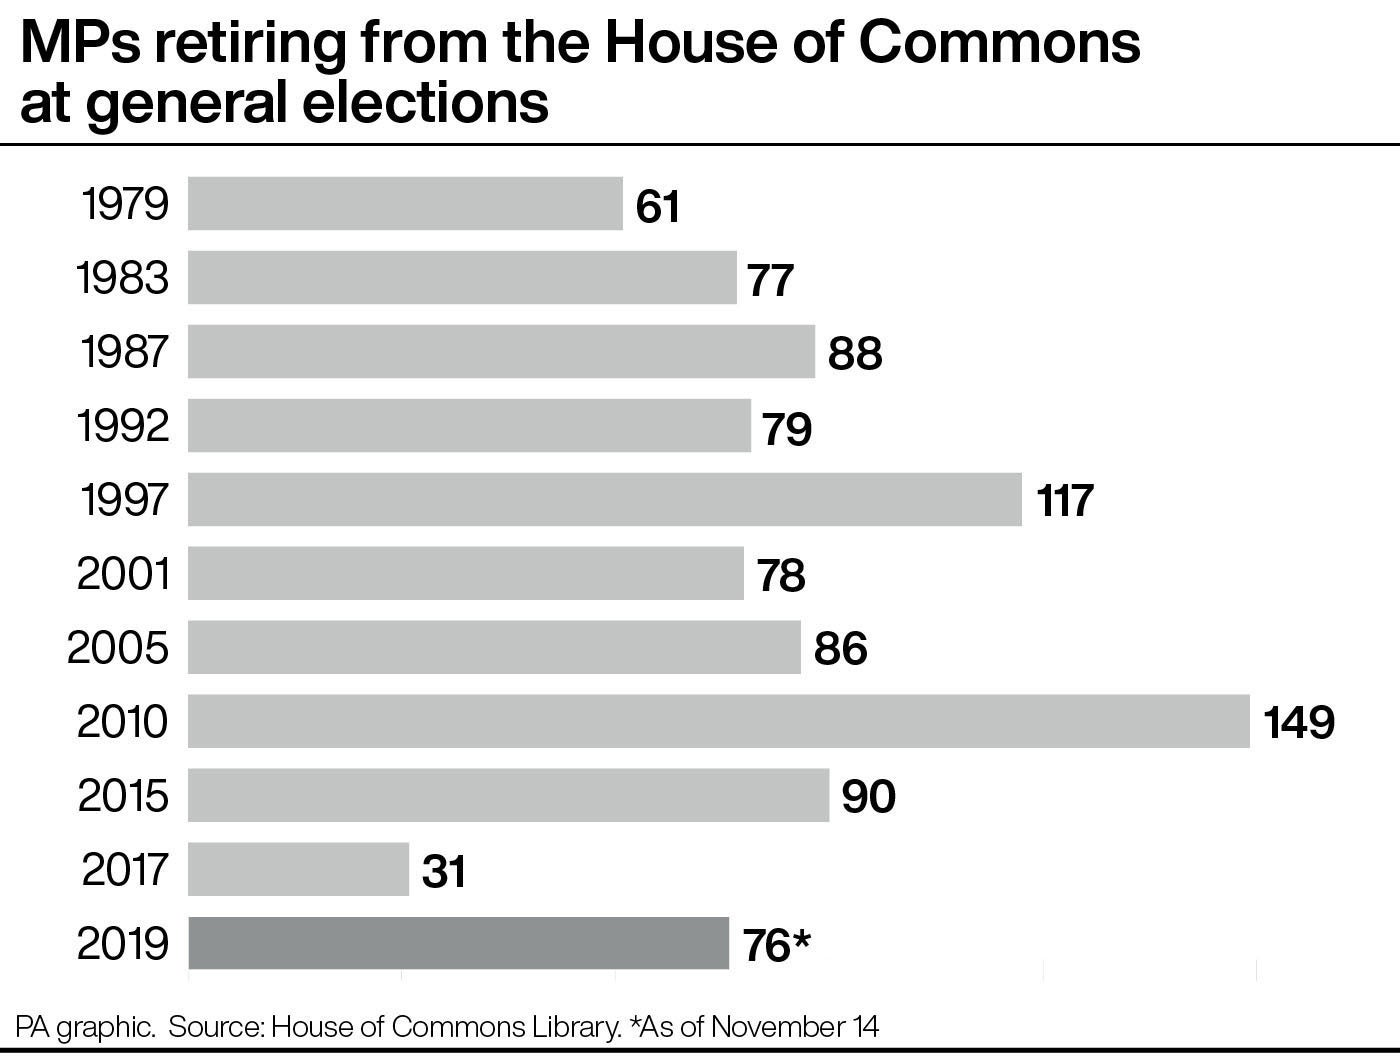 MPs retiring from the House of Commons at general elections